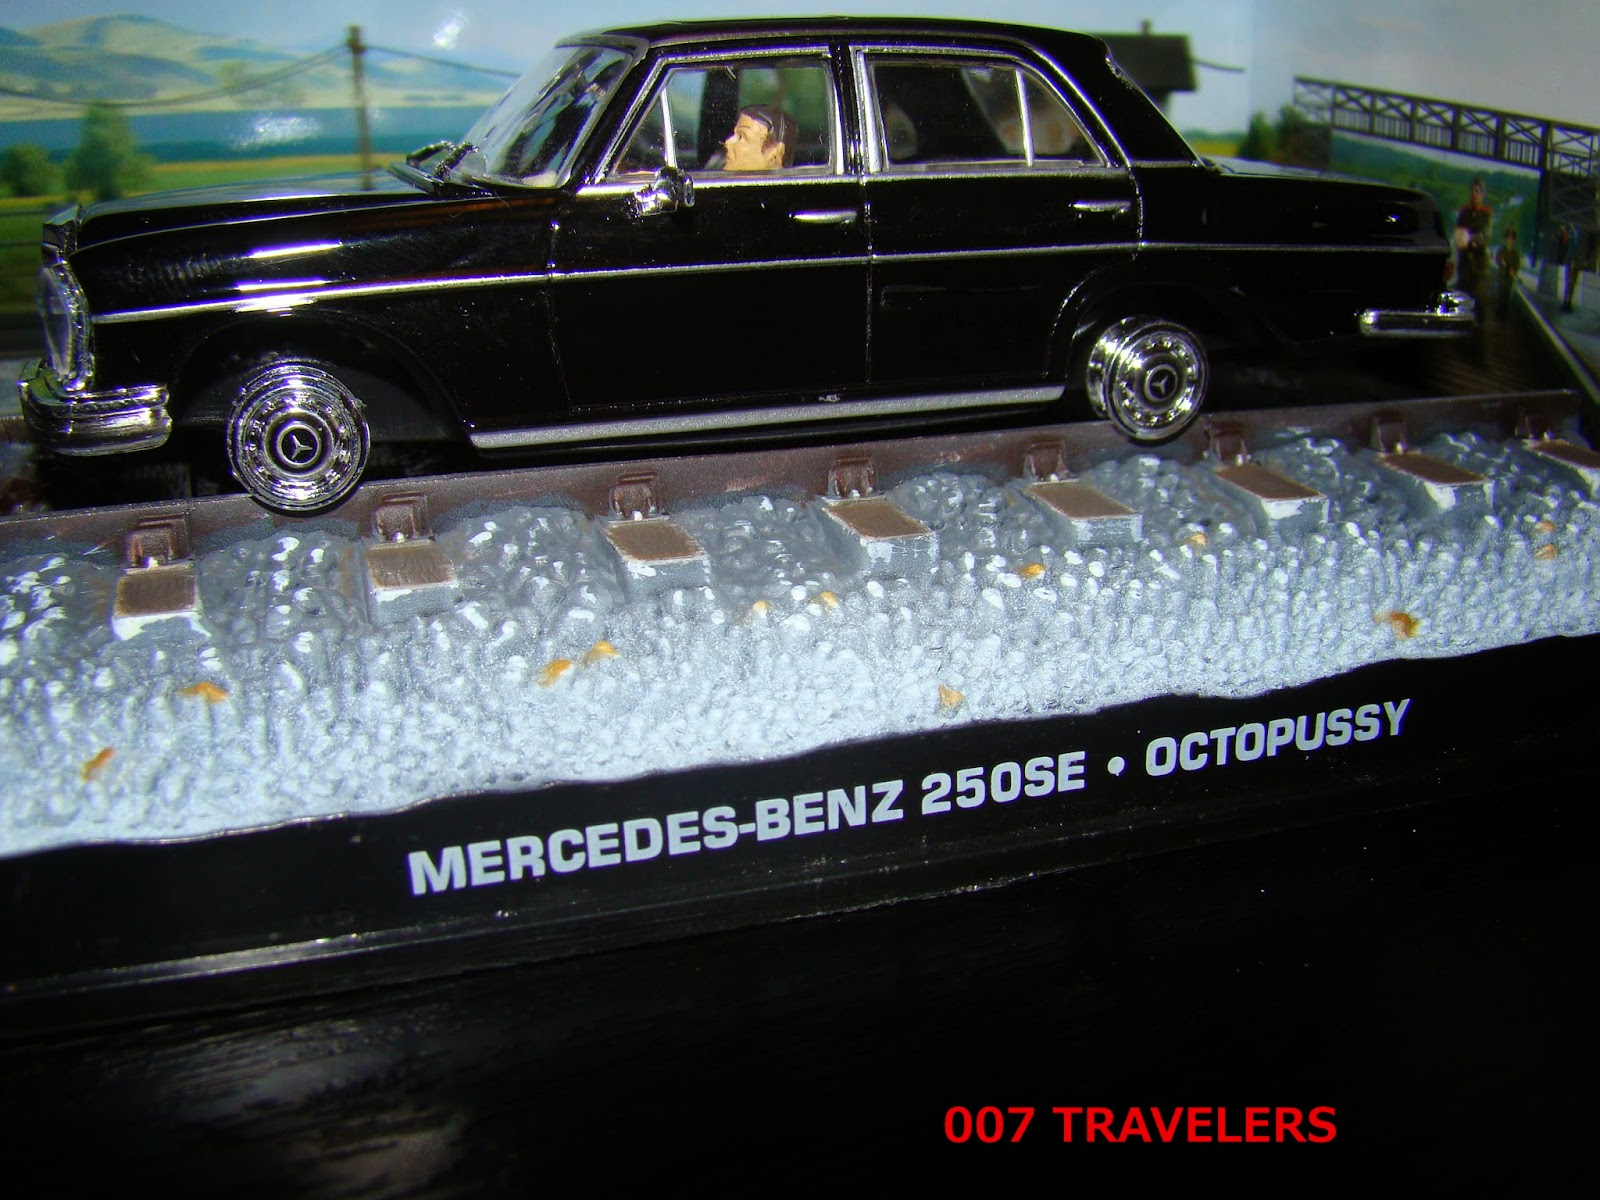 Eon Se Share Price >> 007 TRAVELERS: 007 Vehicle: Mercedes 250SE / Octopussy (1983)